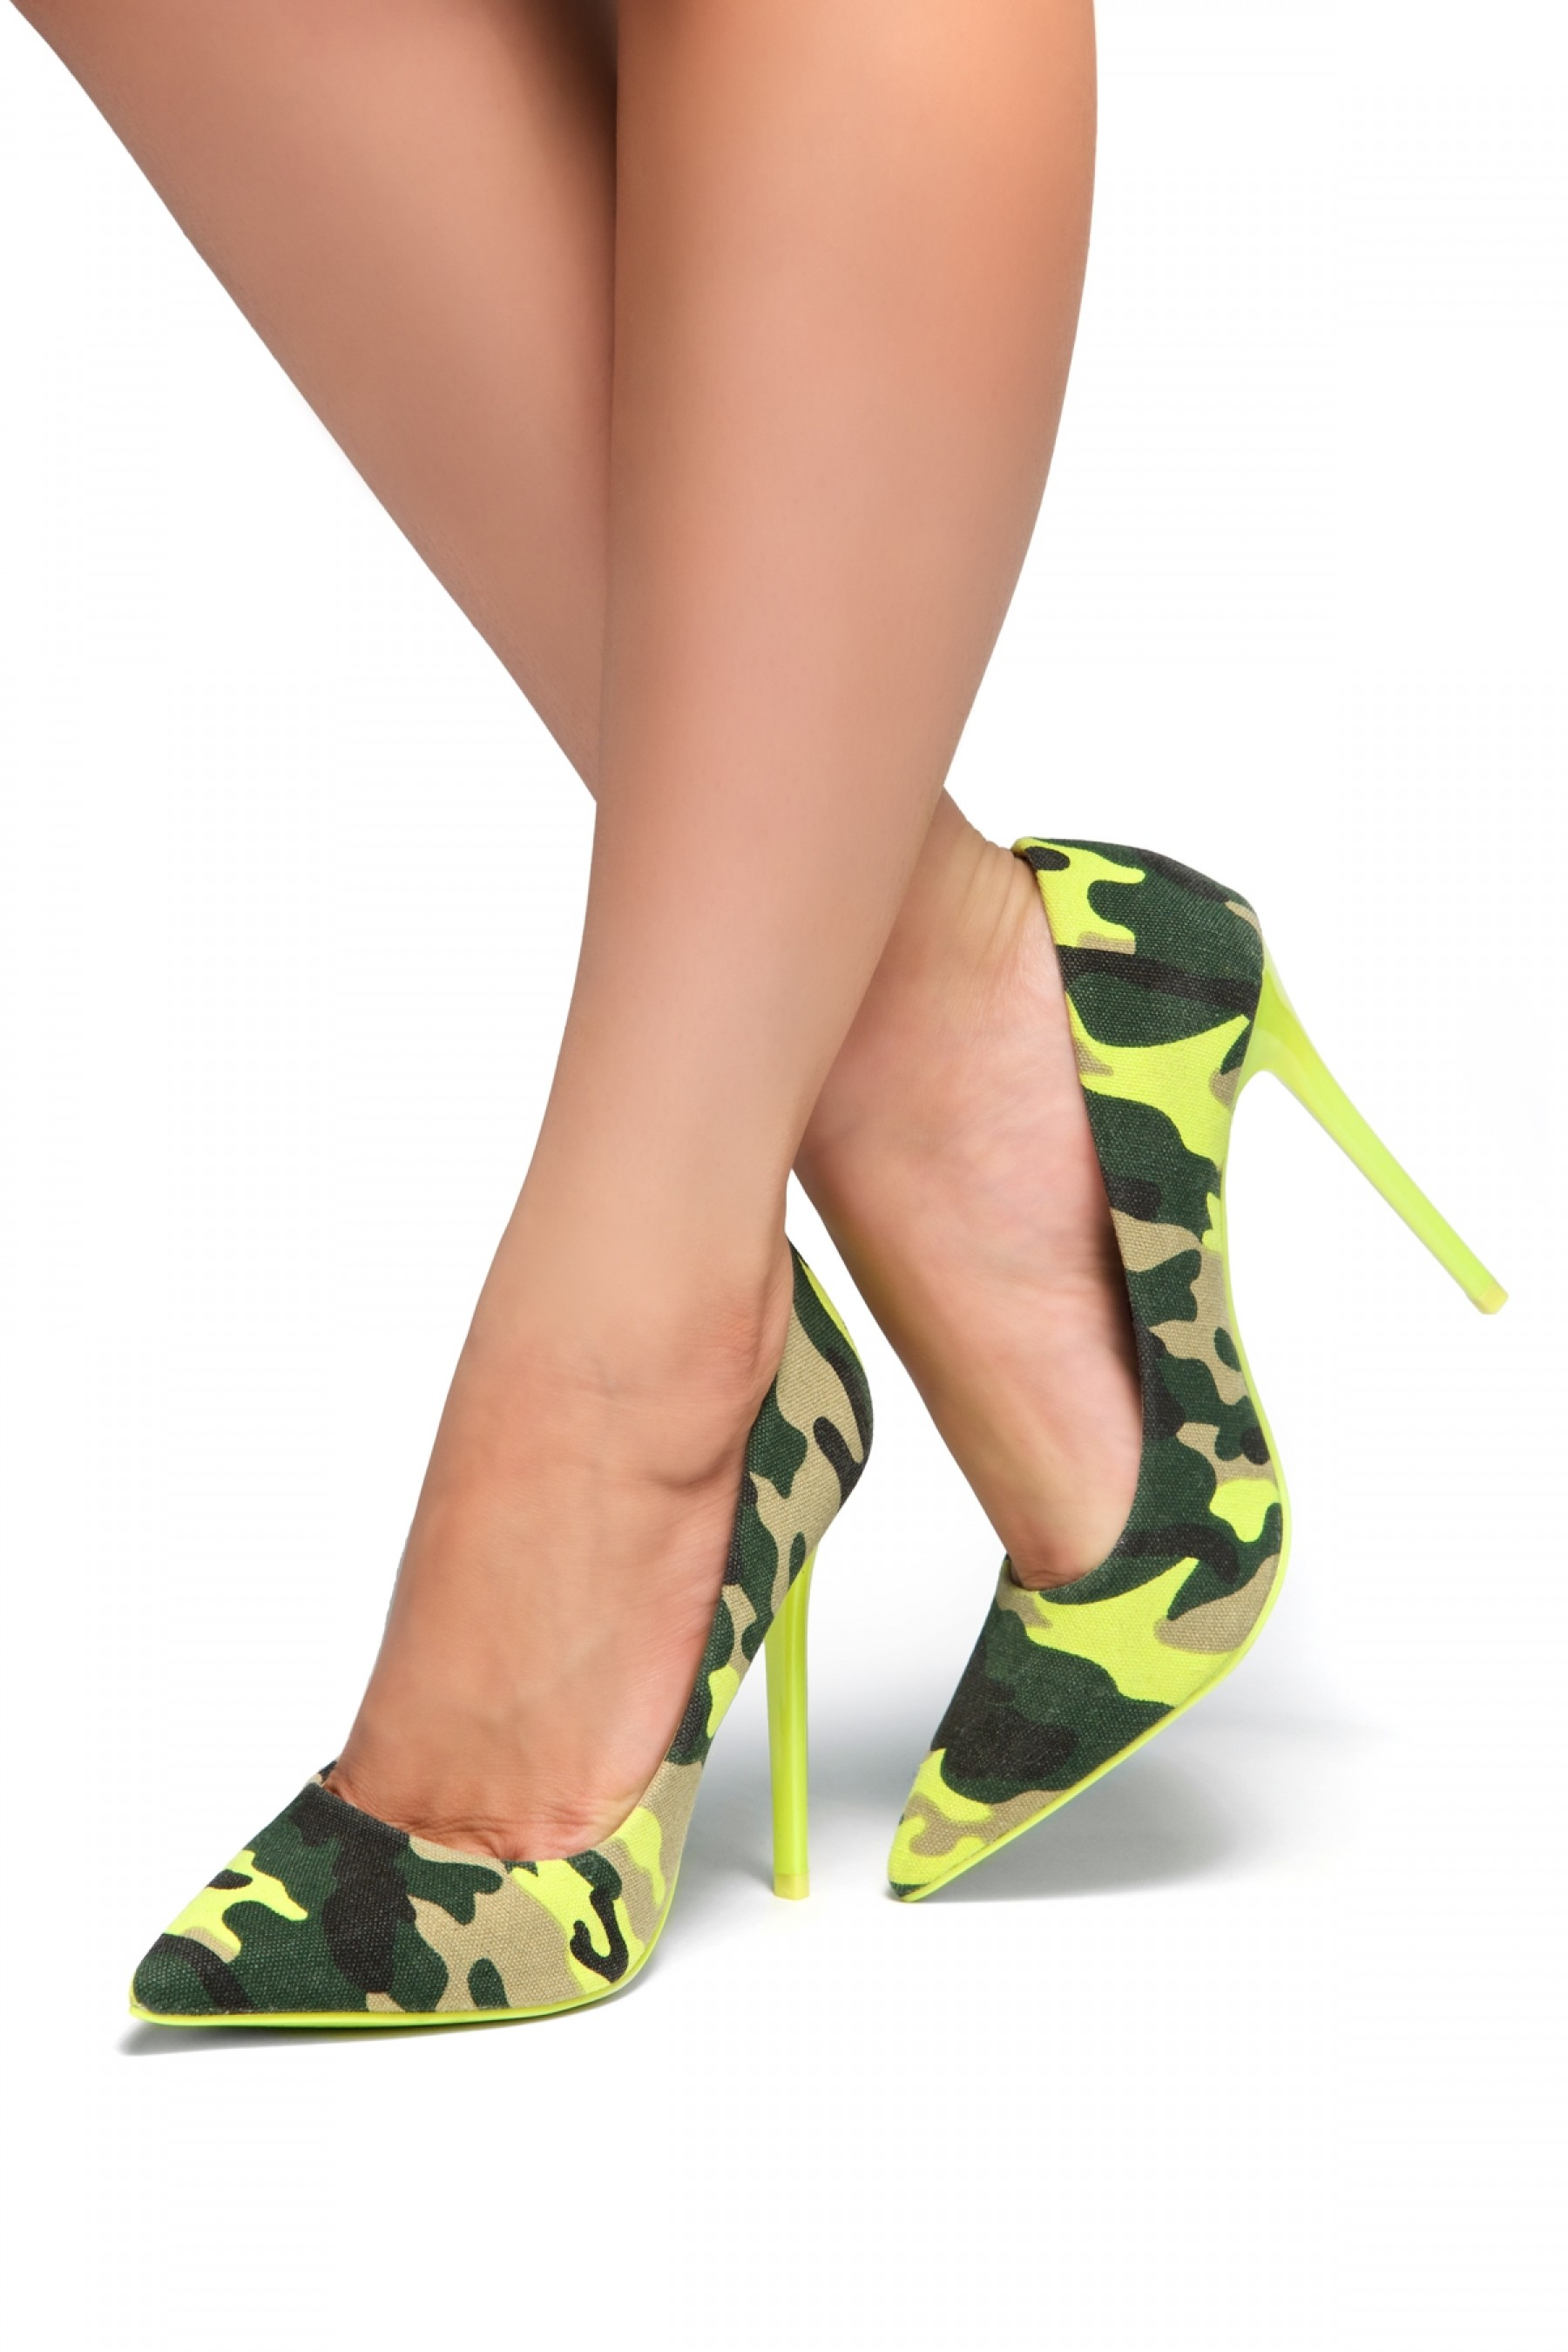 HerStyle Laurie-Camouflage Pump, stiletto heel (Lime/Camouflage)